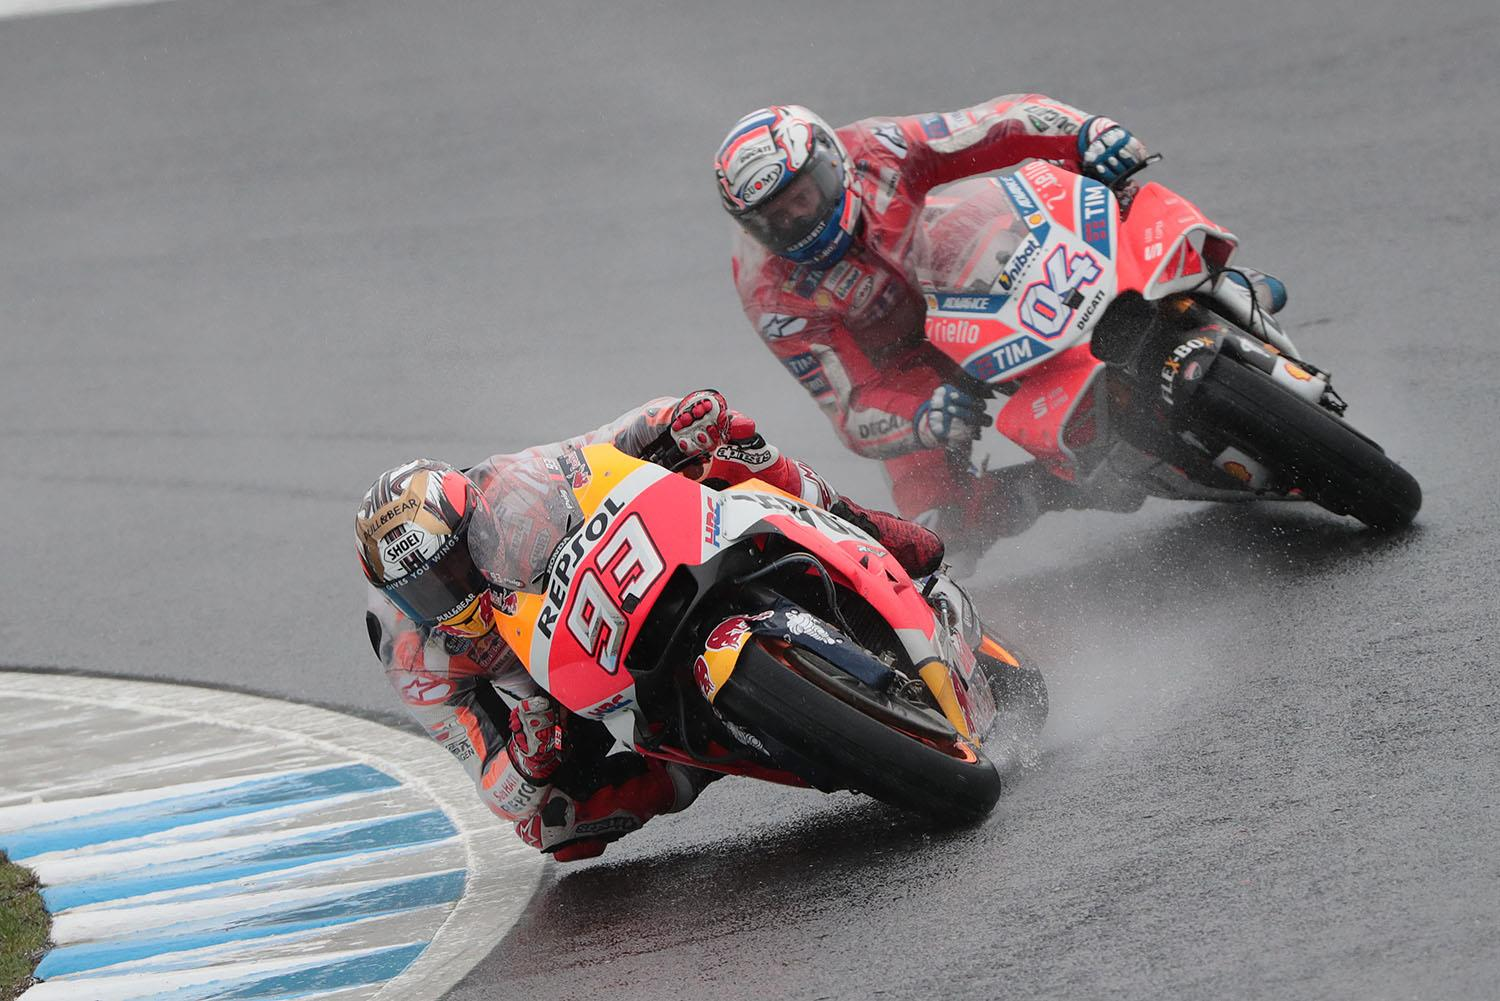 Pedrosa: Malaysian GP Race is Unpredictable